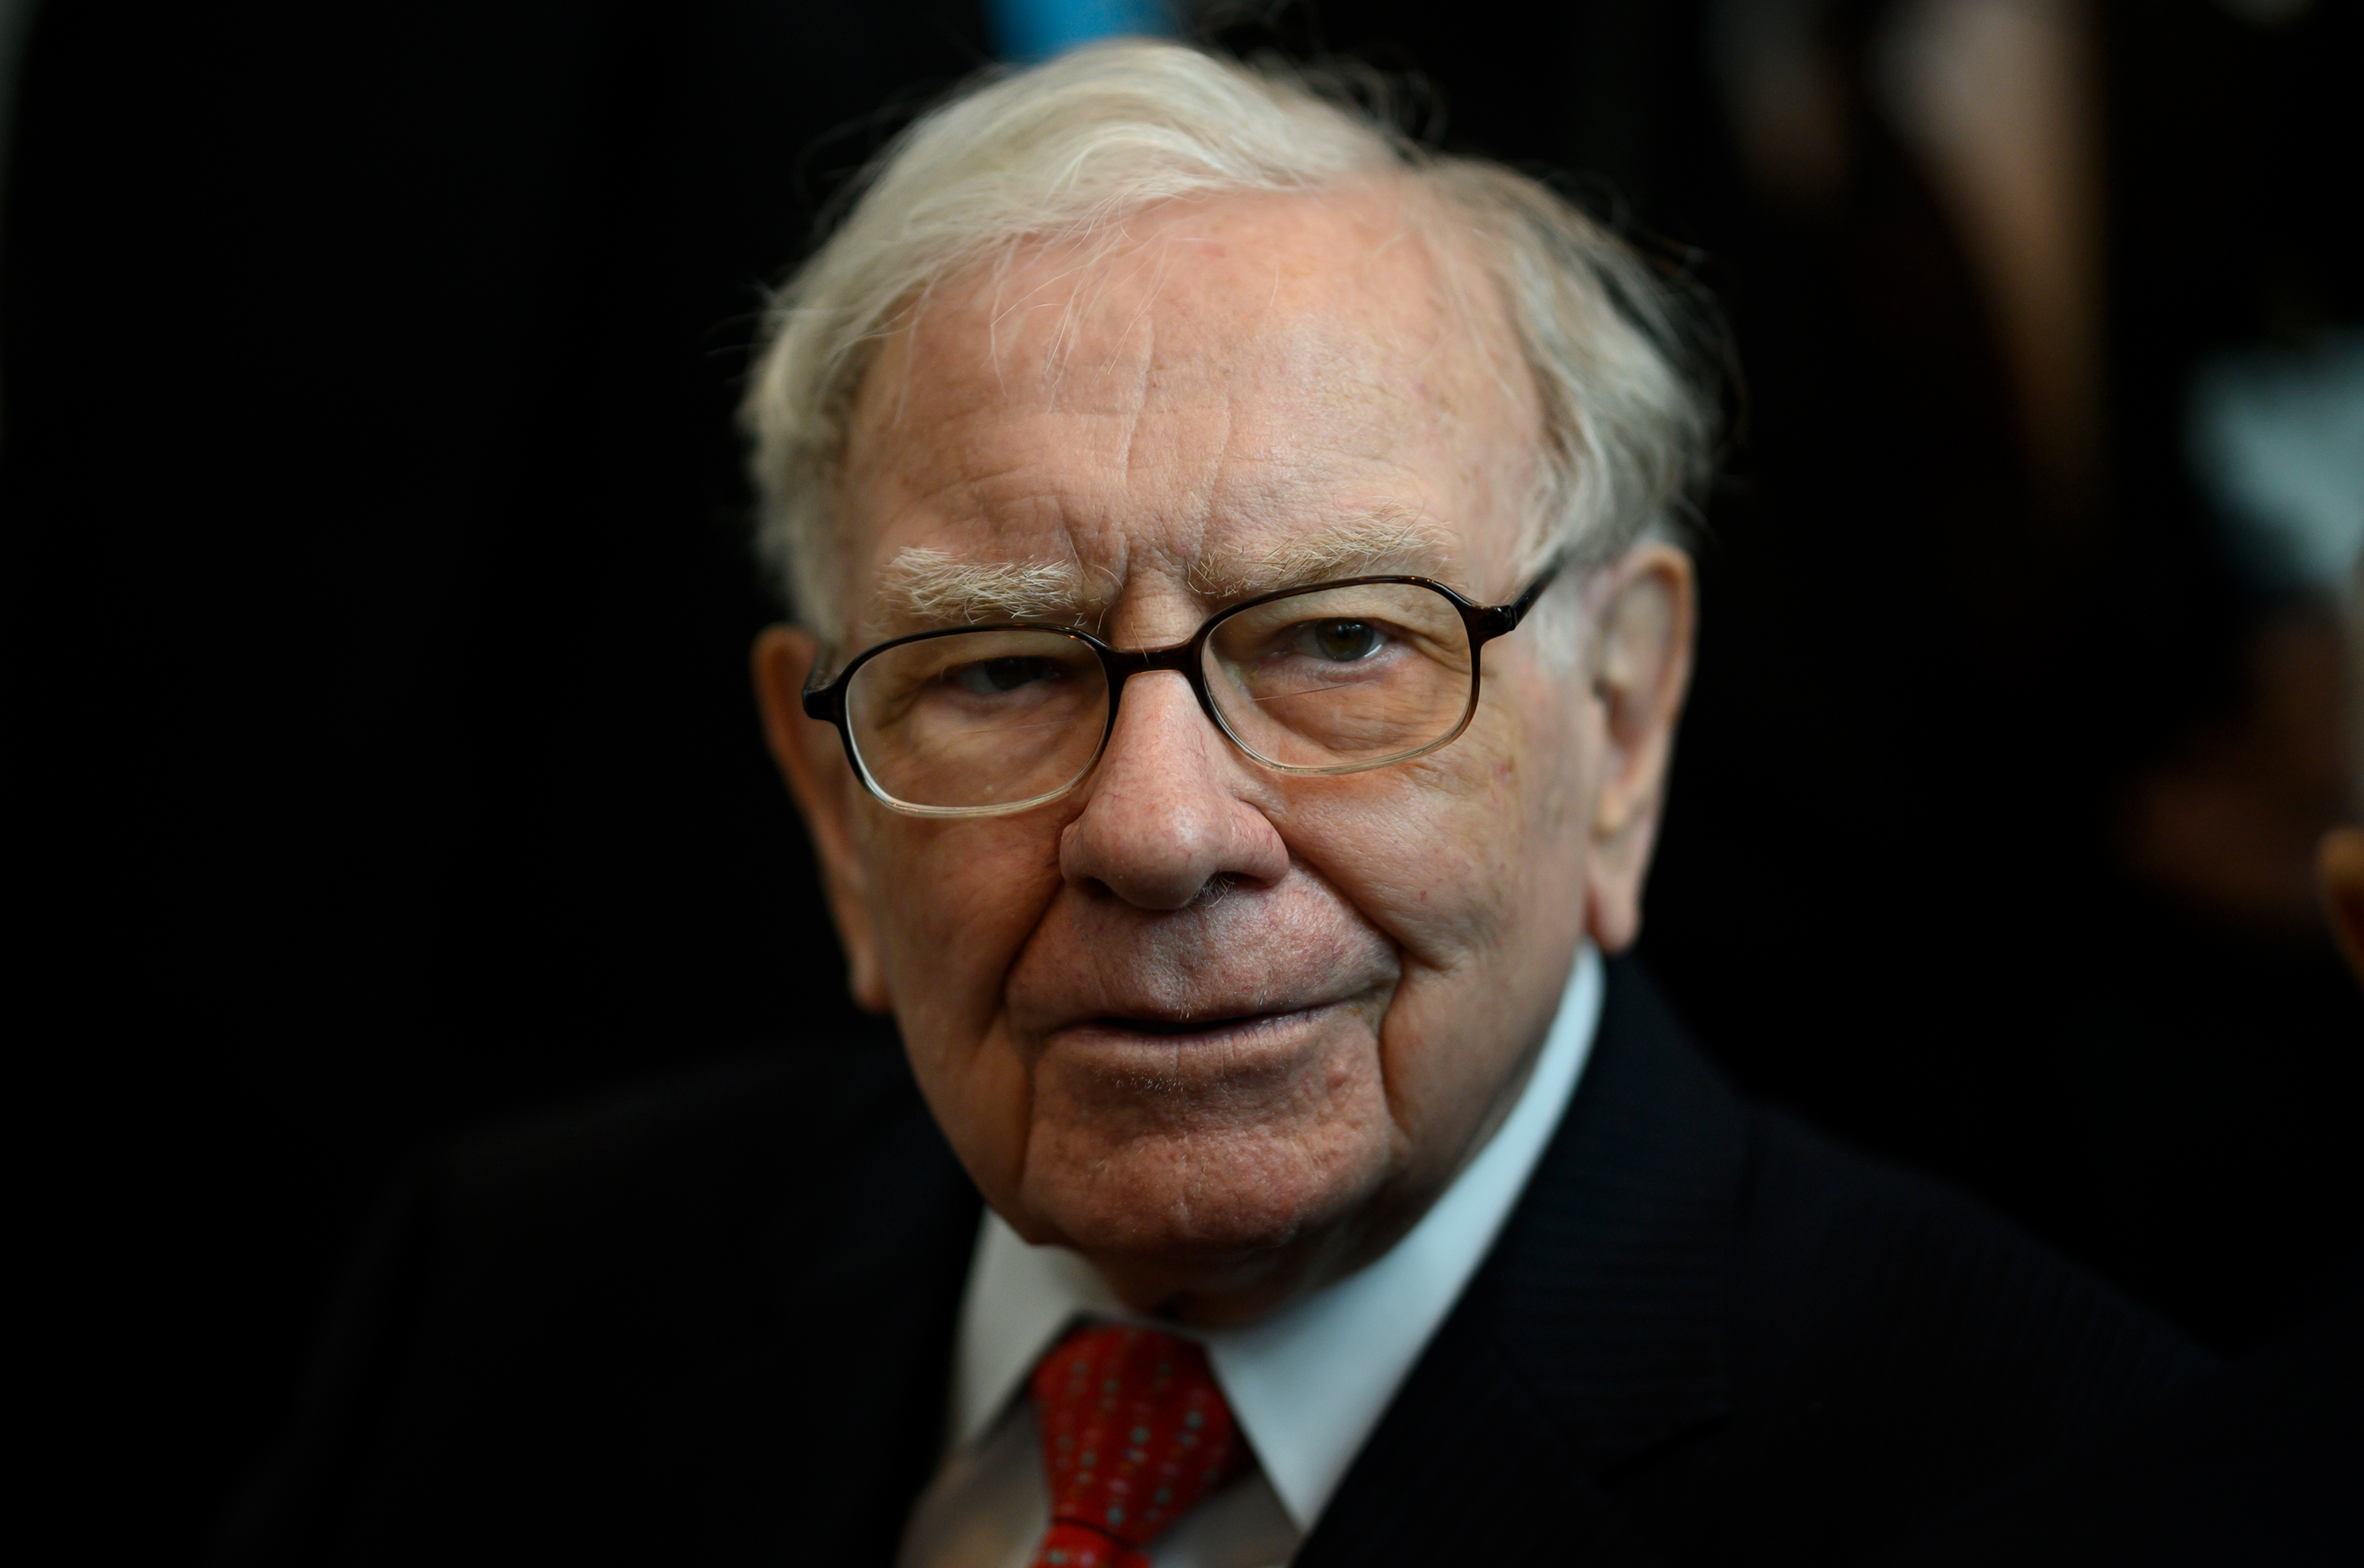 Buffett's Berkshire Hathaway earnings jumped 87% as it recovers from the pandemic